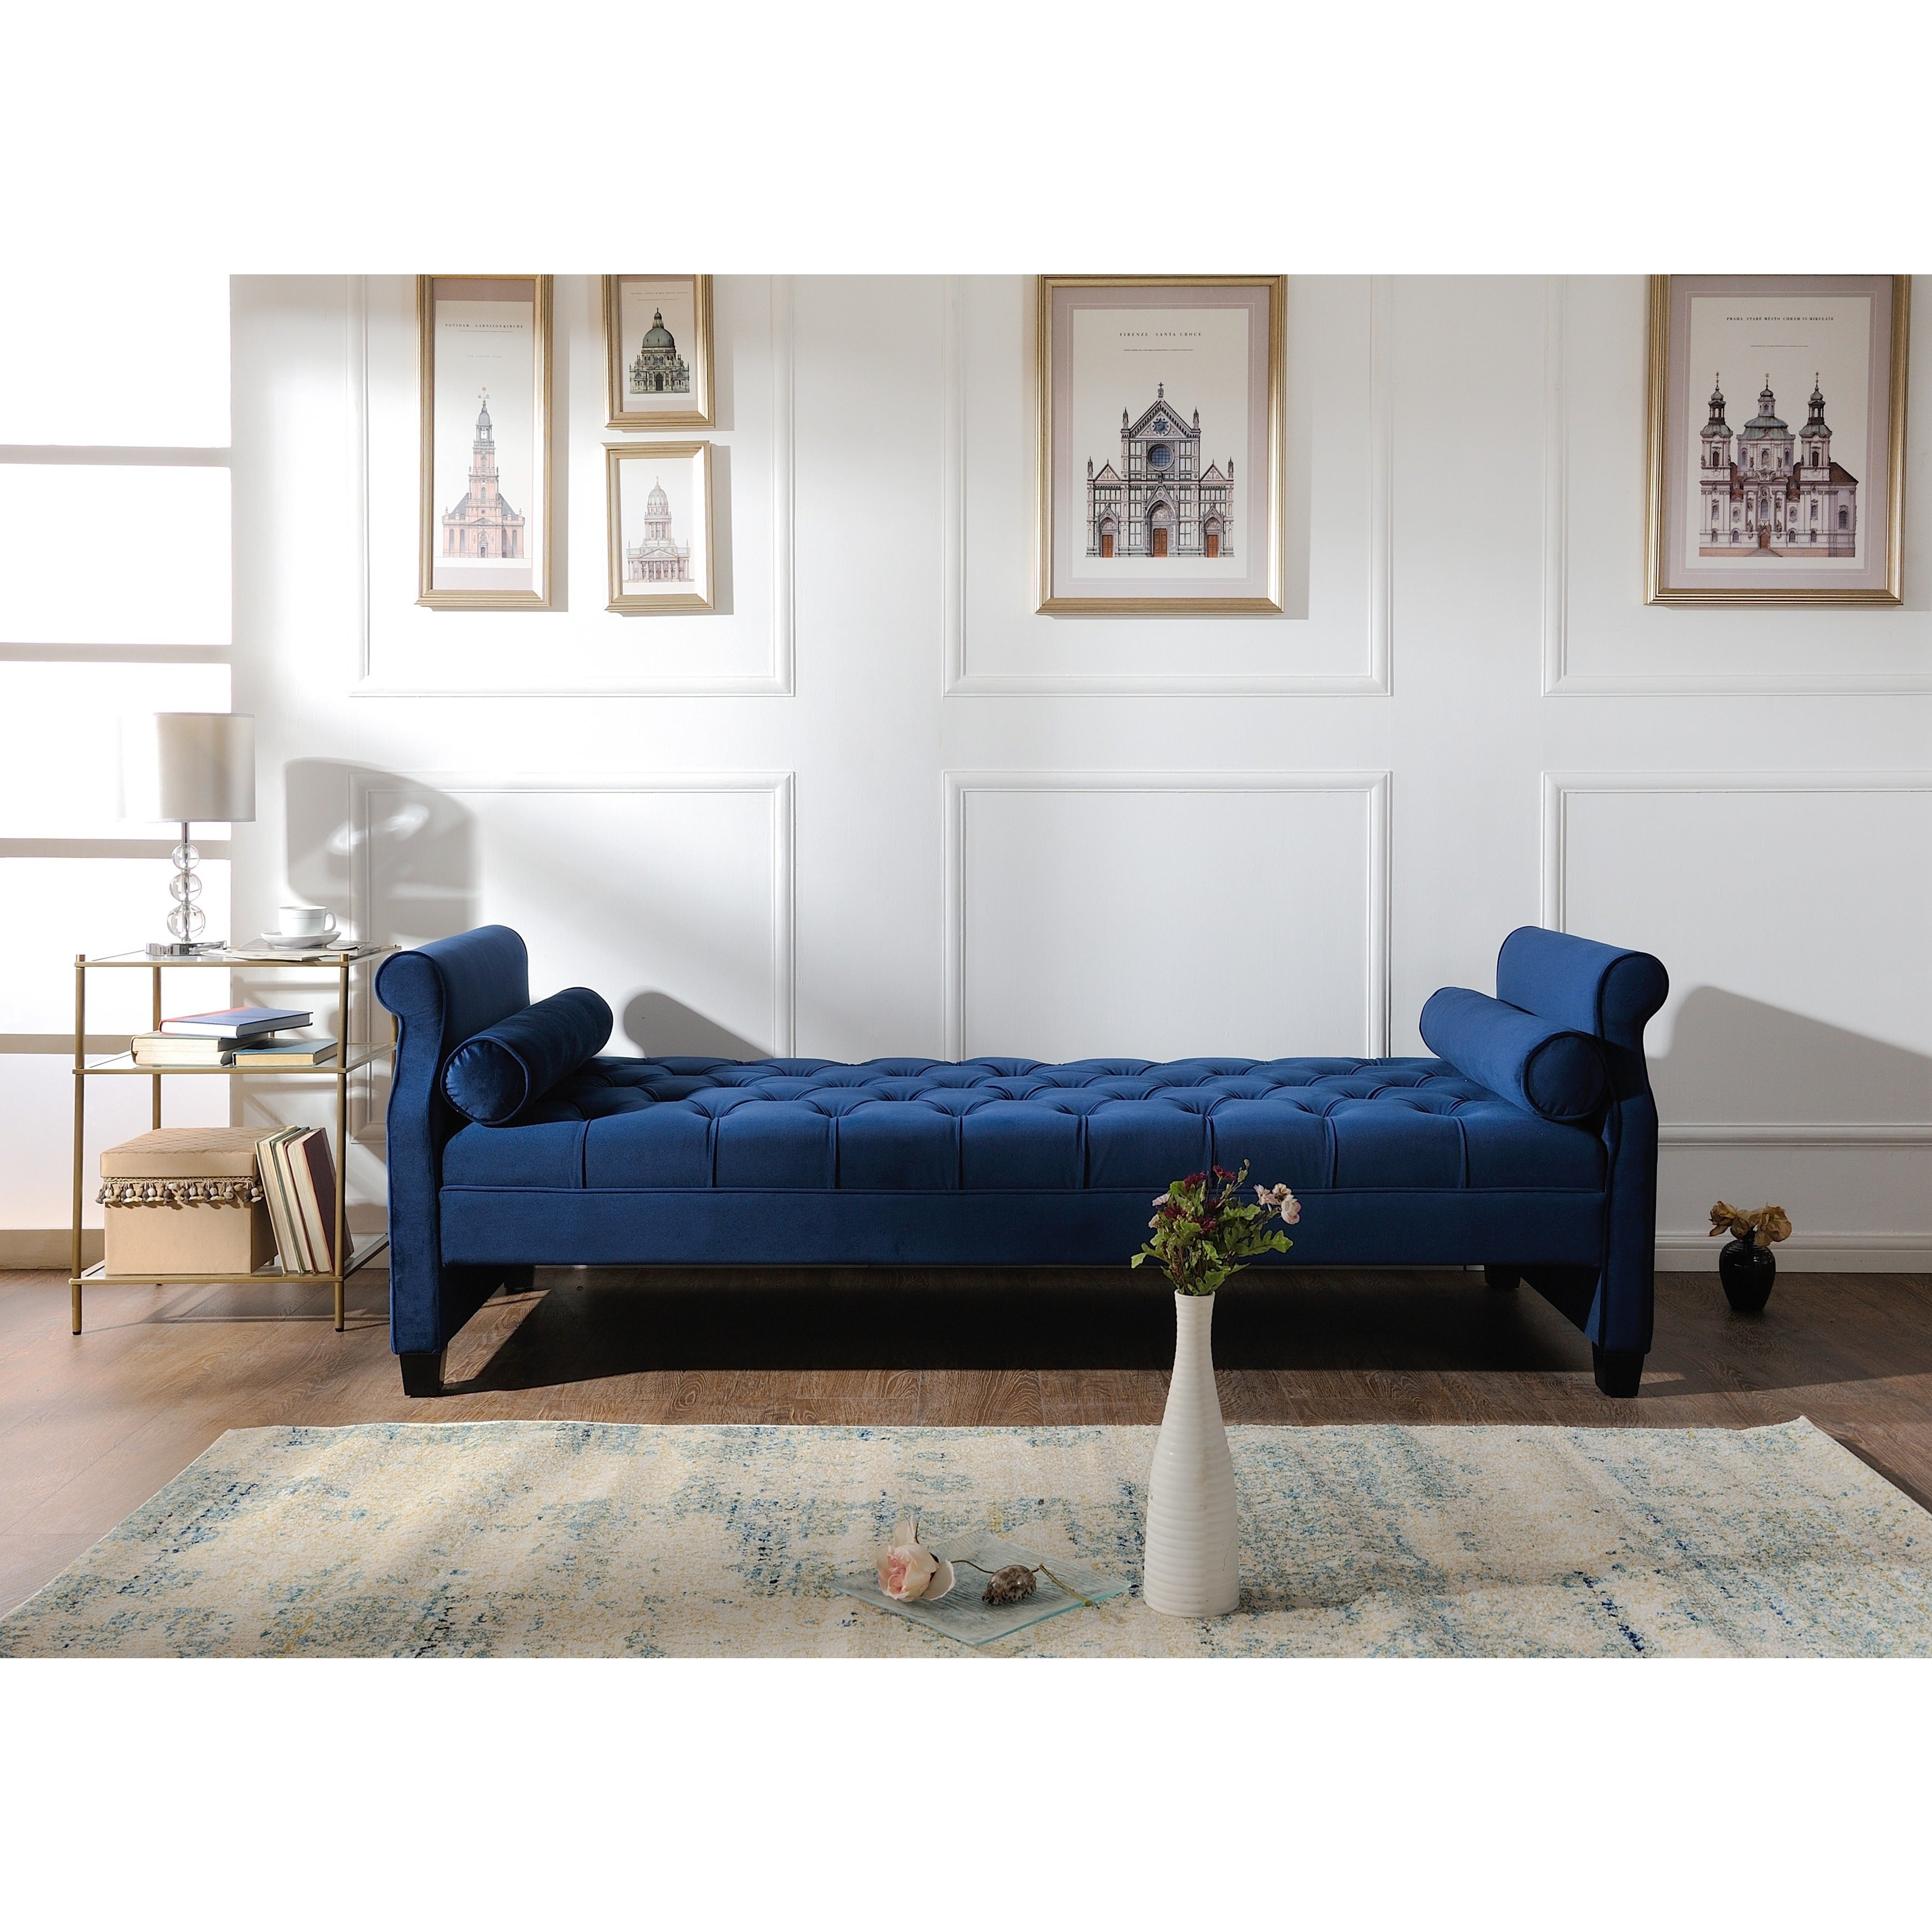 Merveilleux Shop Clay Alder Home Charles Tufted Upholstered Sofa Bed   On Sale   Free  Shipping Today   Overstock.com   23122697